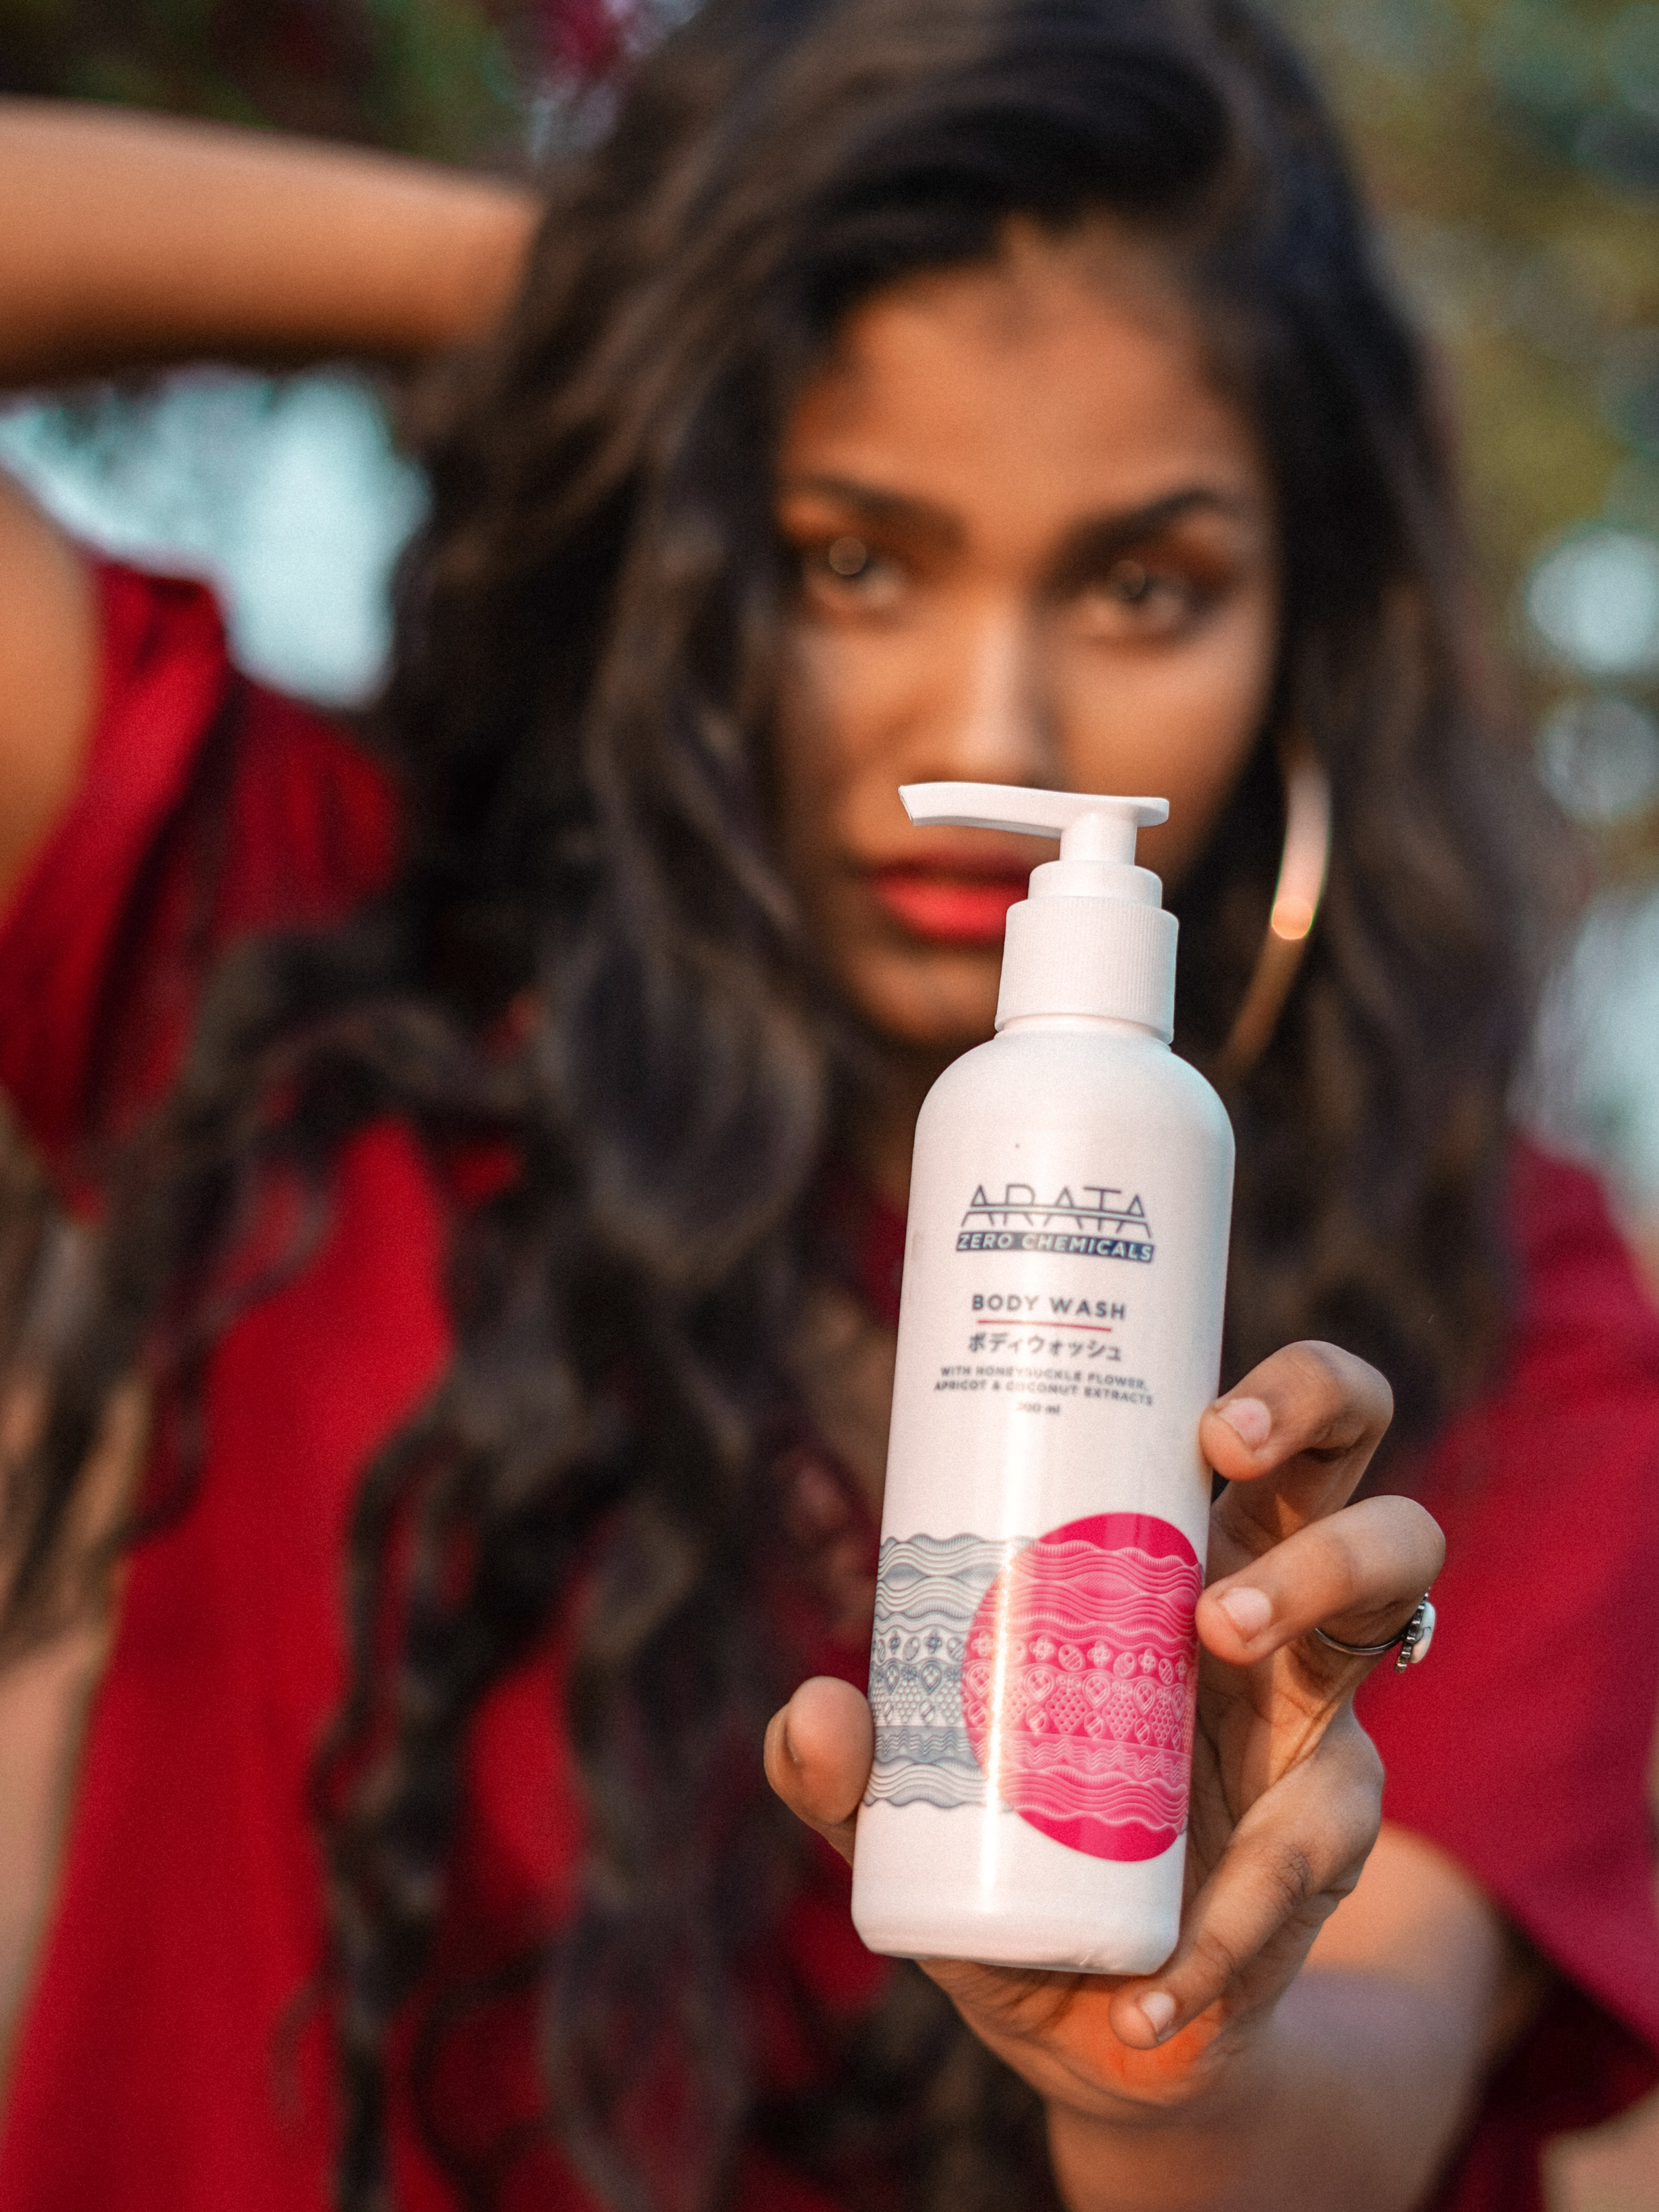 Arata Coconut & Apricot Body Wash -my shower time is now more fun!!-By nikita_biswas